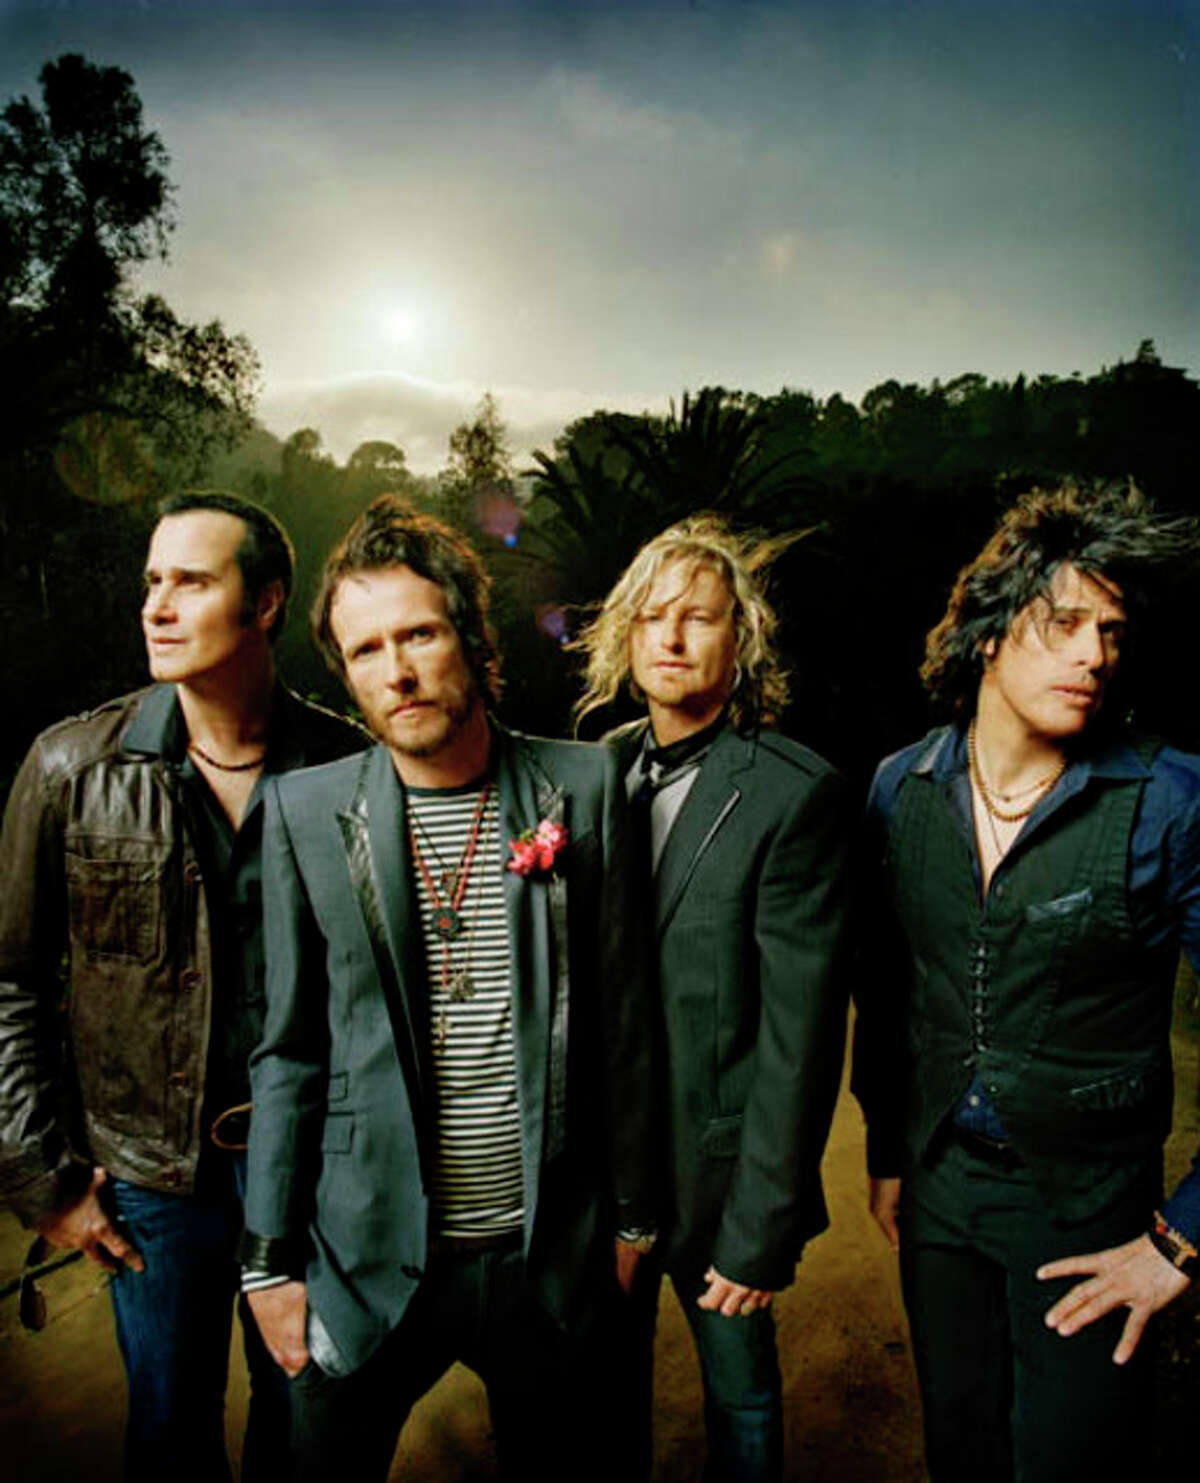 STONETEMPLEPILOTS.COM MEMBERS OF THE STONE TEMPLE PILOTS showed touching concern when singer Scott Weiland, second from left, was sentenced to eight days behind bars.